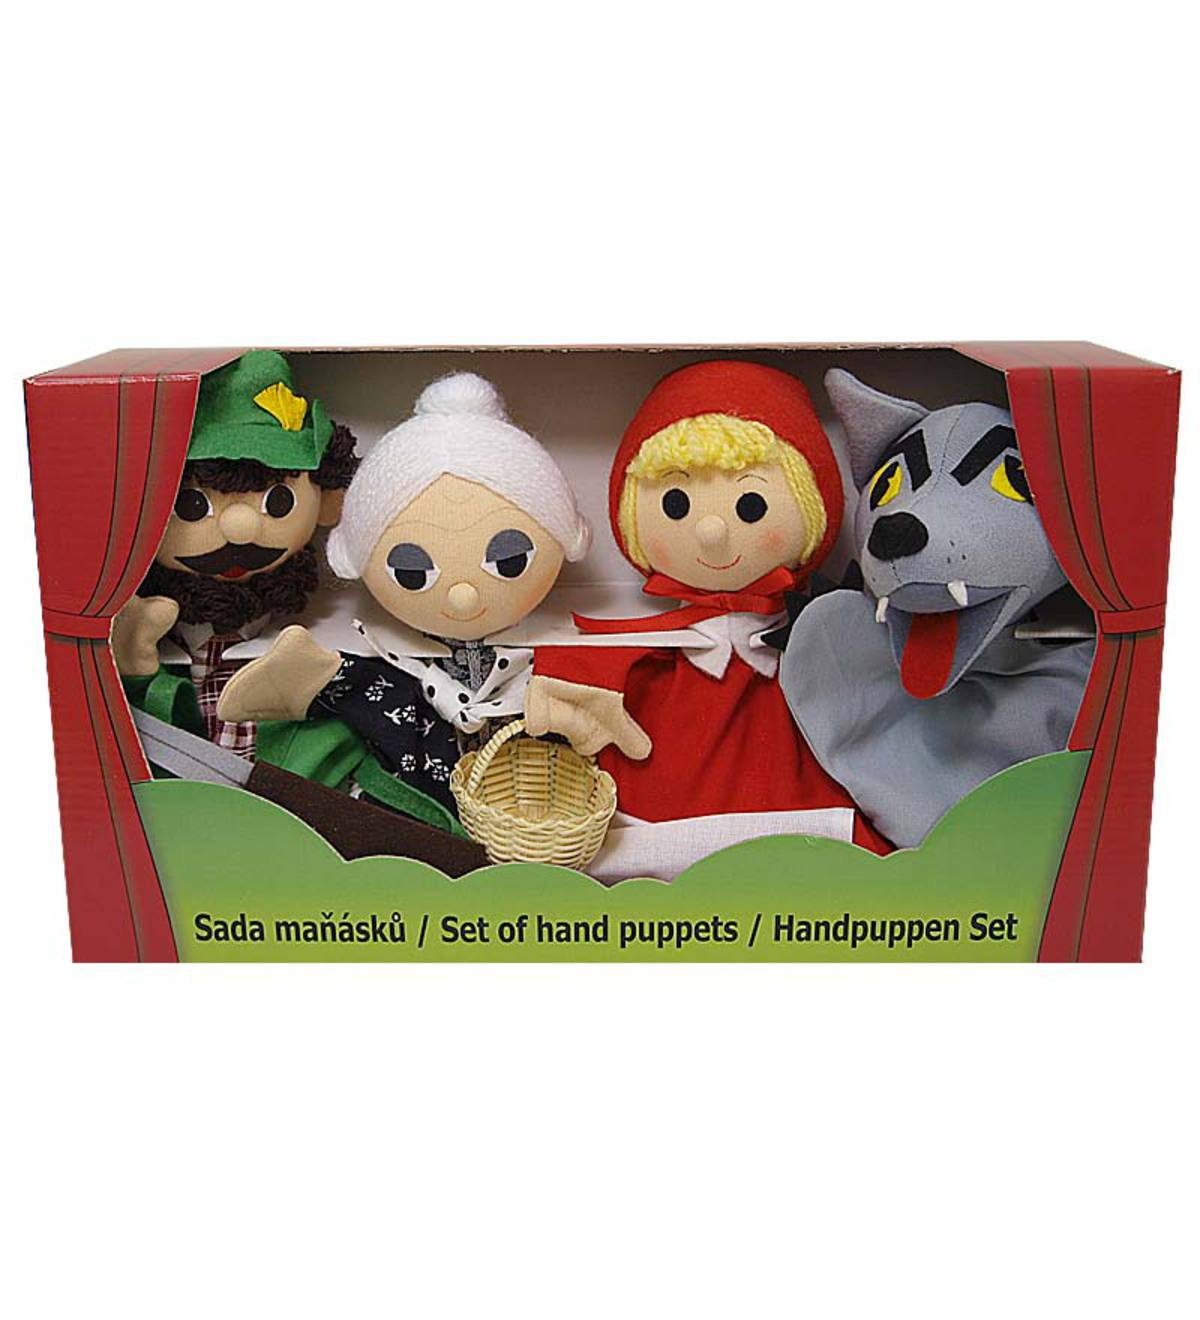 Set of 4 Red Riding Hood Hand Puppet Gift Set